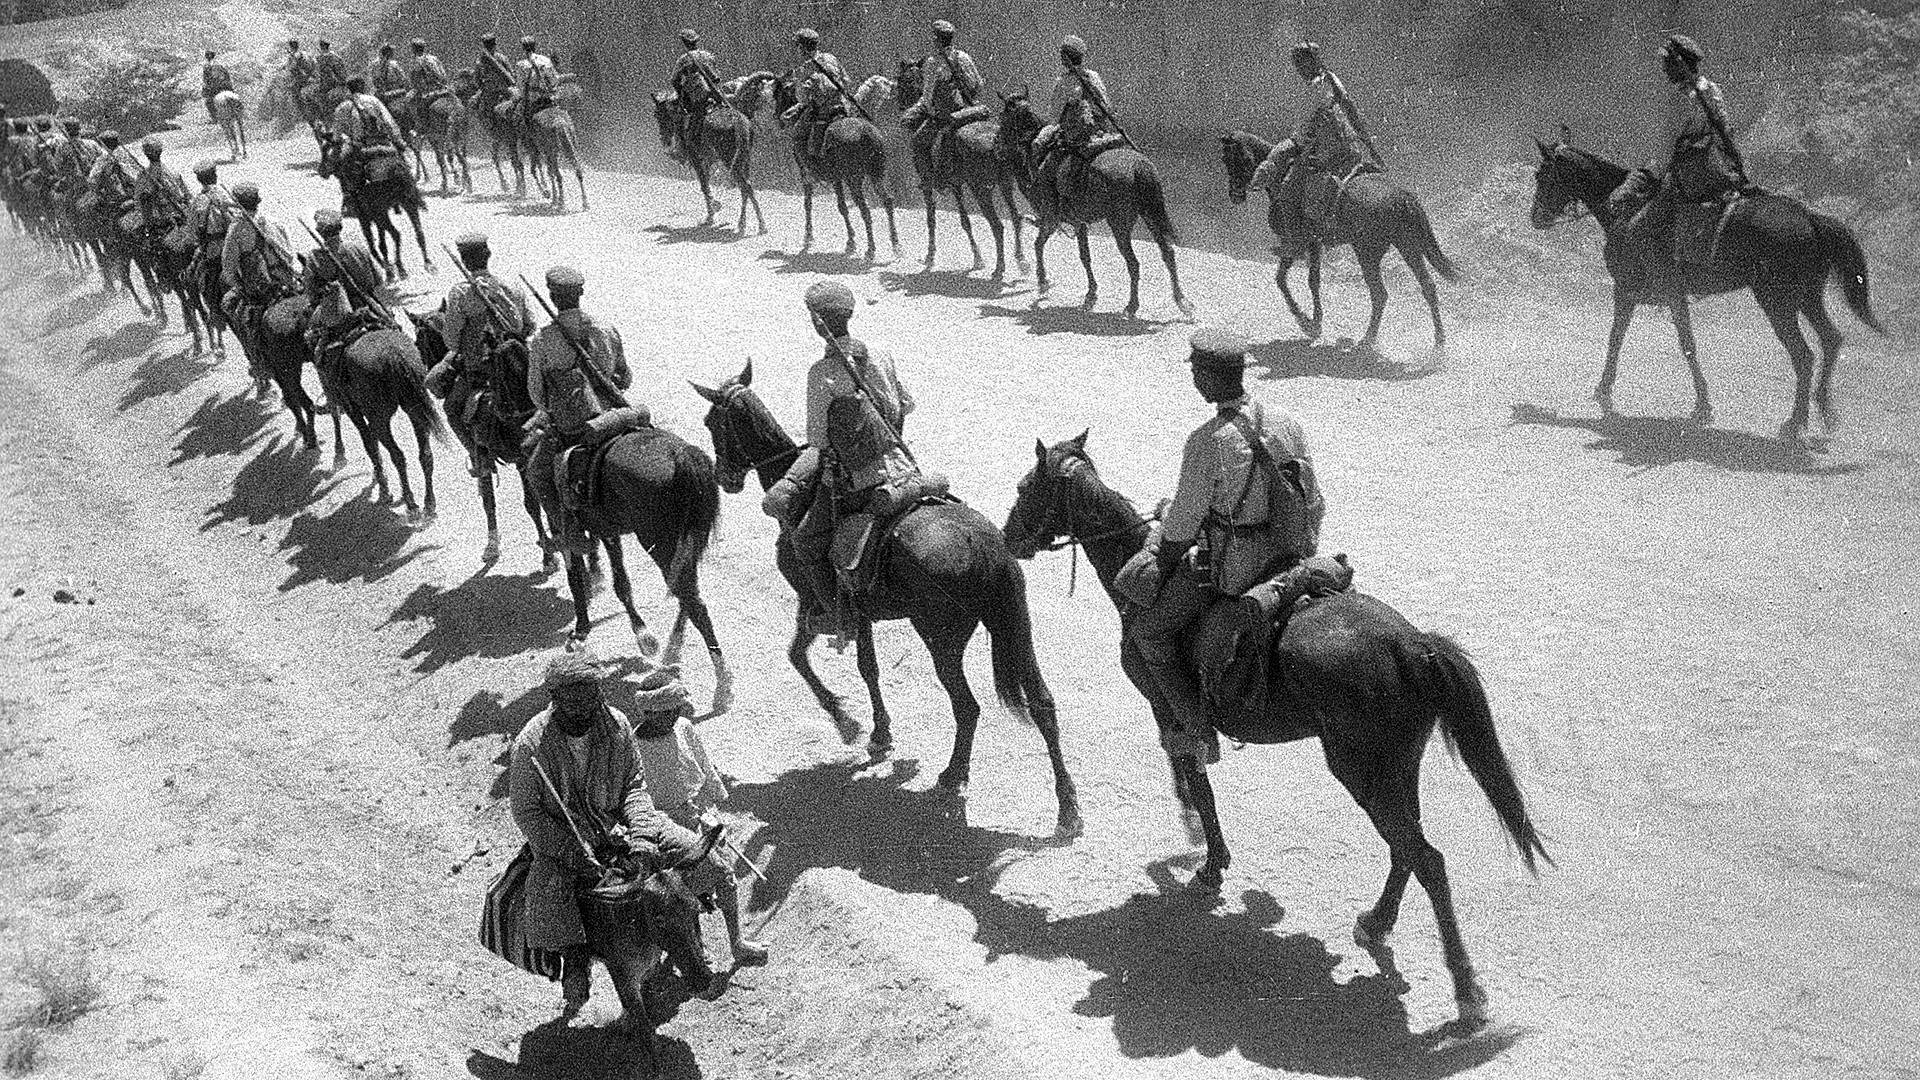 Red cavalrymen on the march.